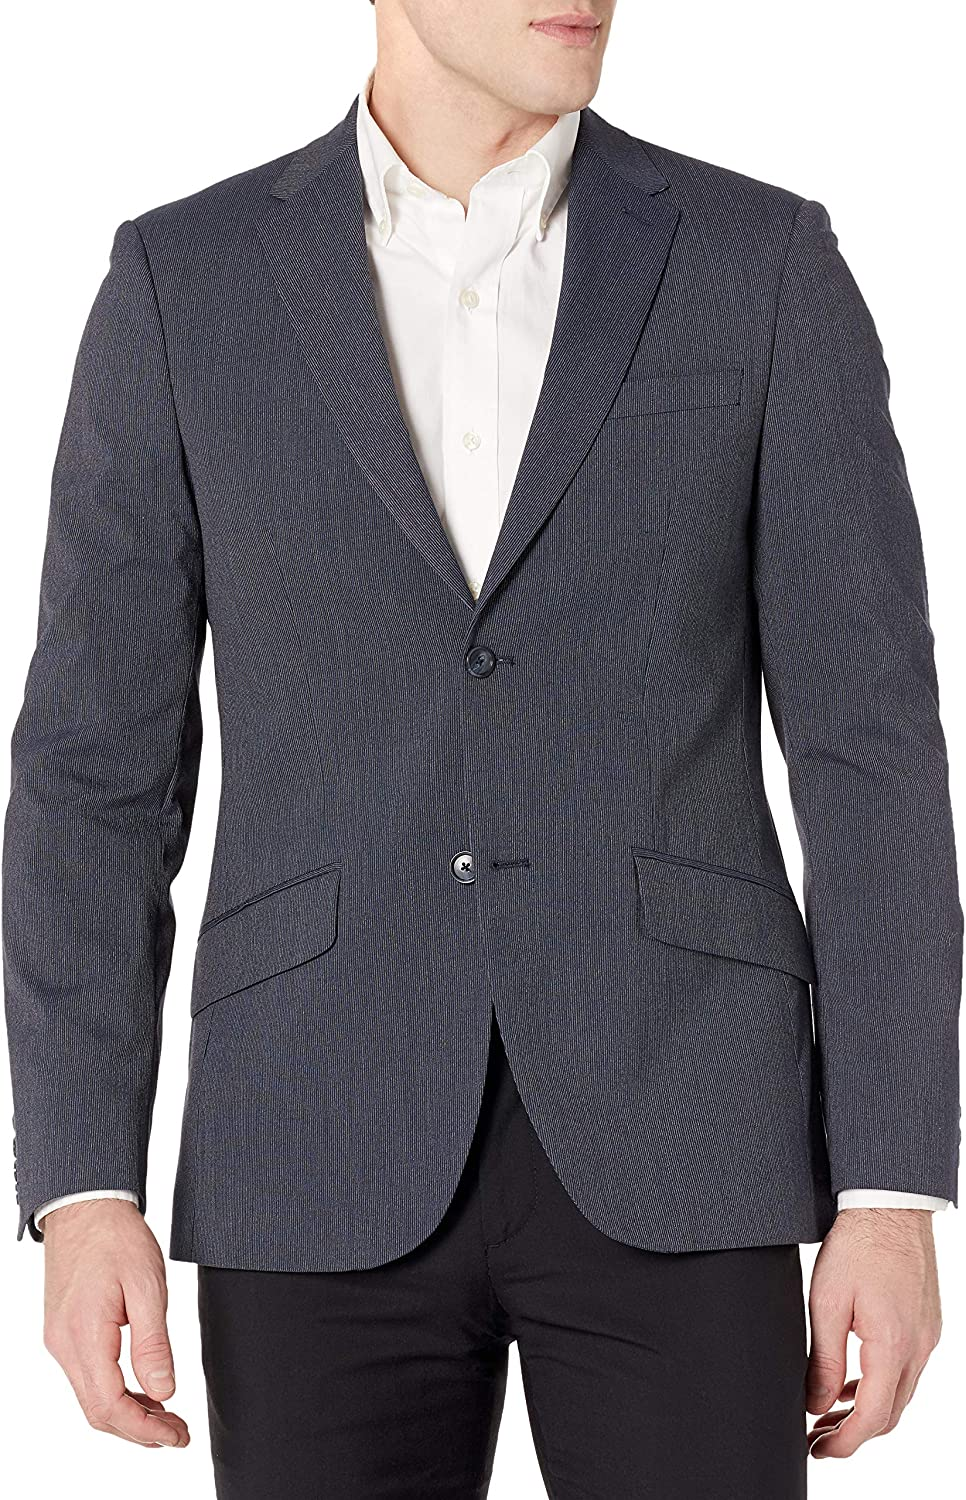 Now free shipping Perry Ellis Kansas City Mall Men's Slim Fit Machine Washable Suit Striped Jacket